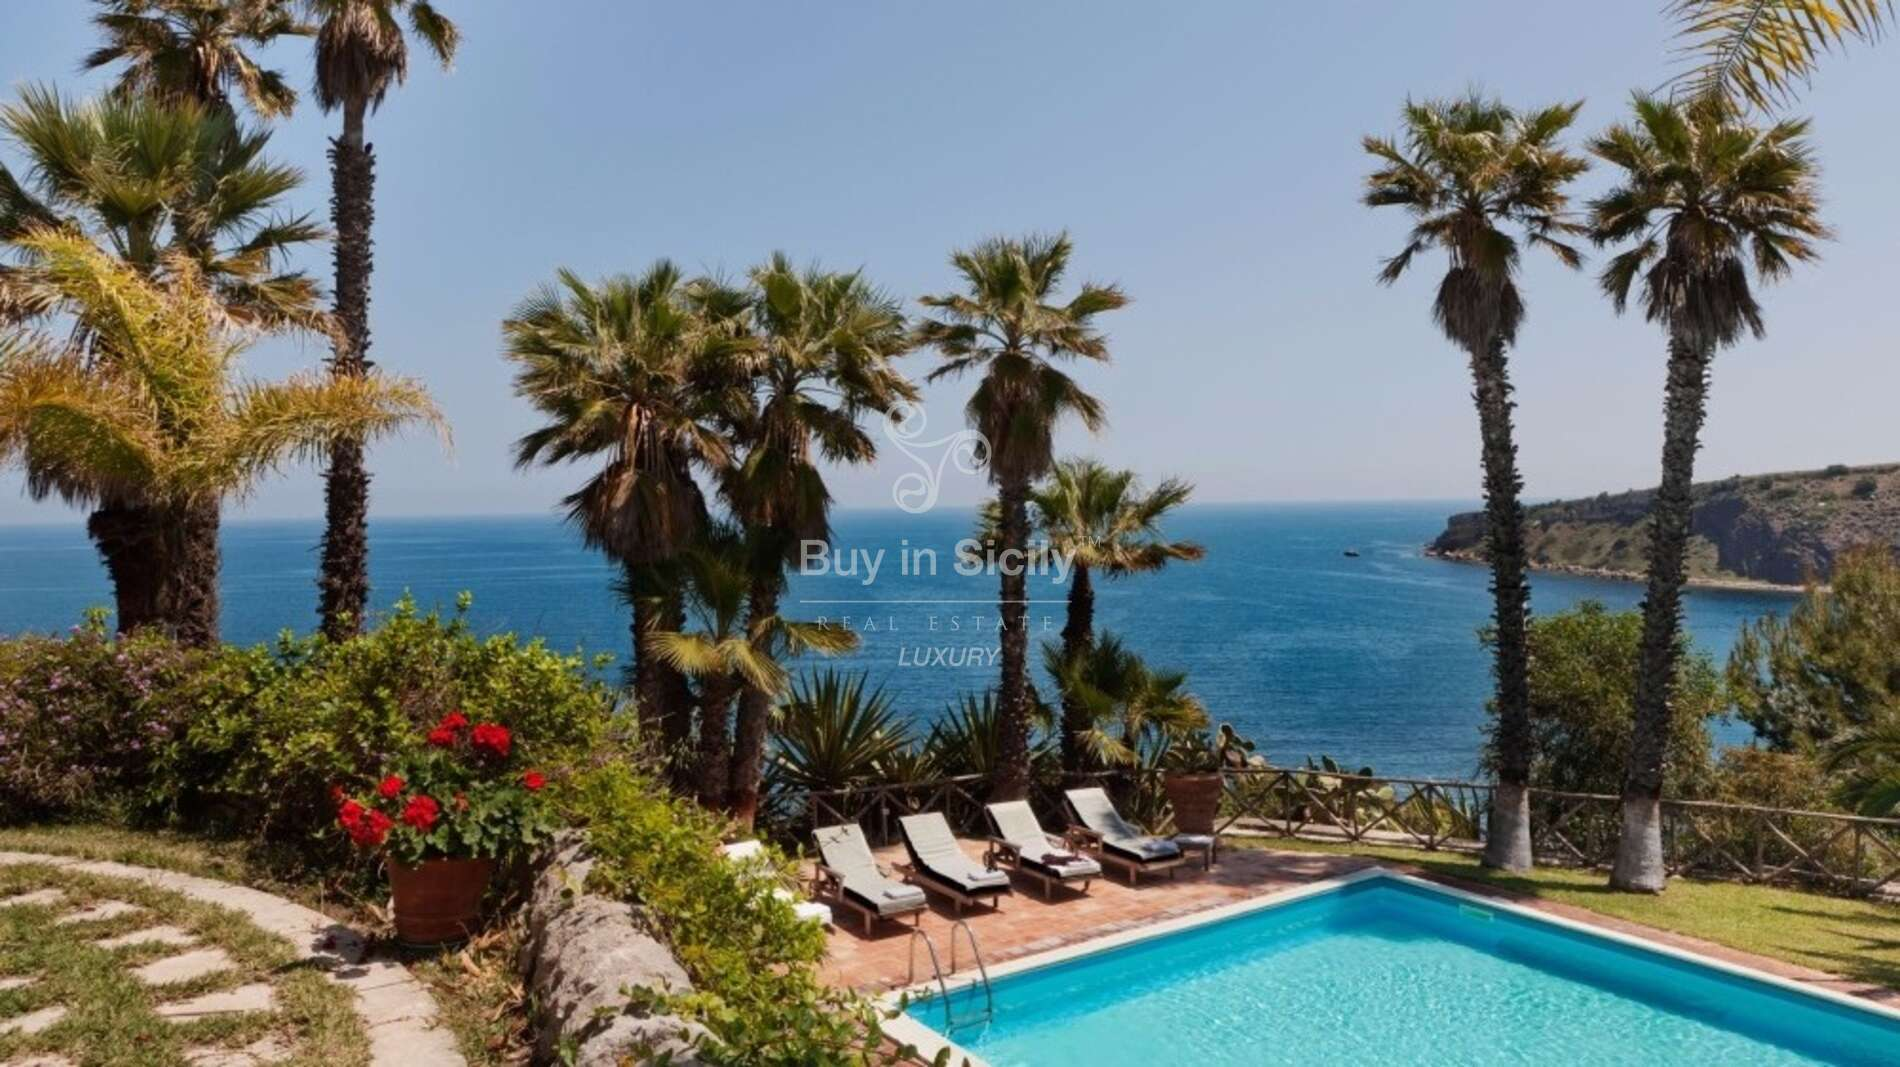 Exclusive villa with amazing private beach on the sea